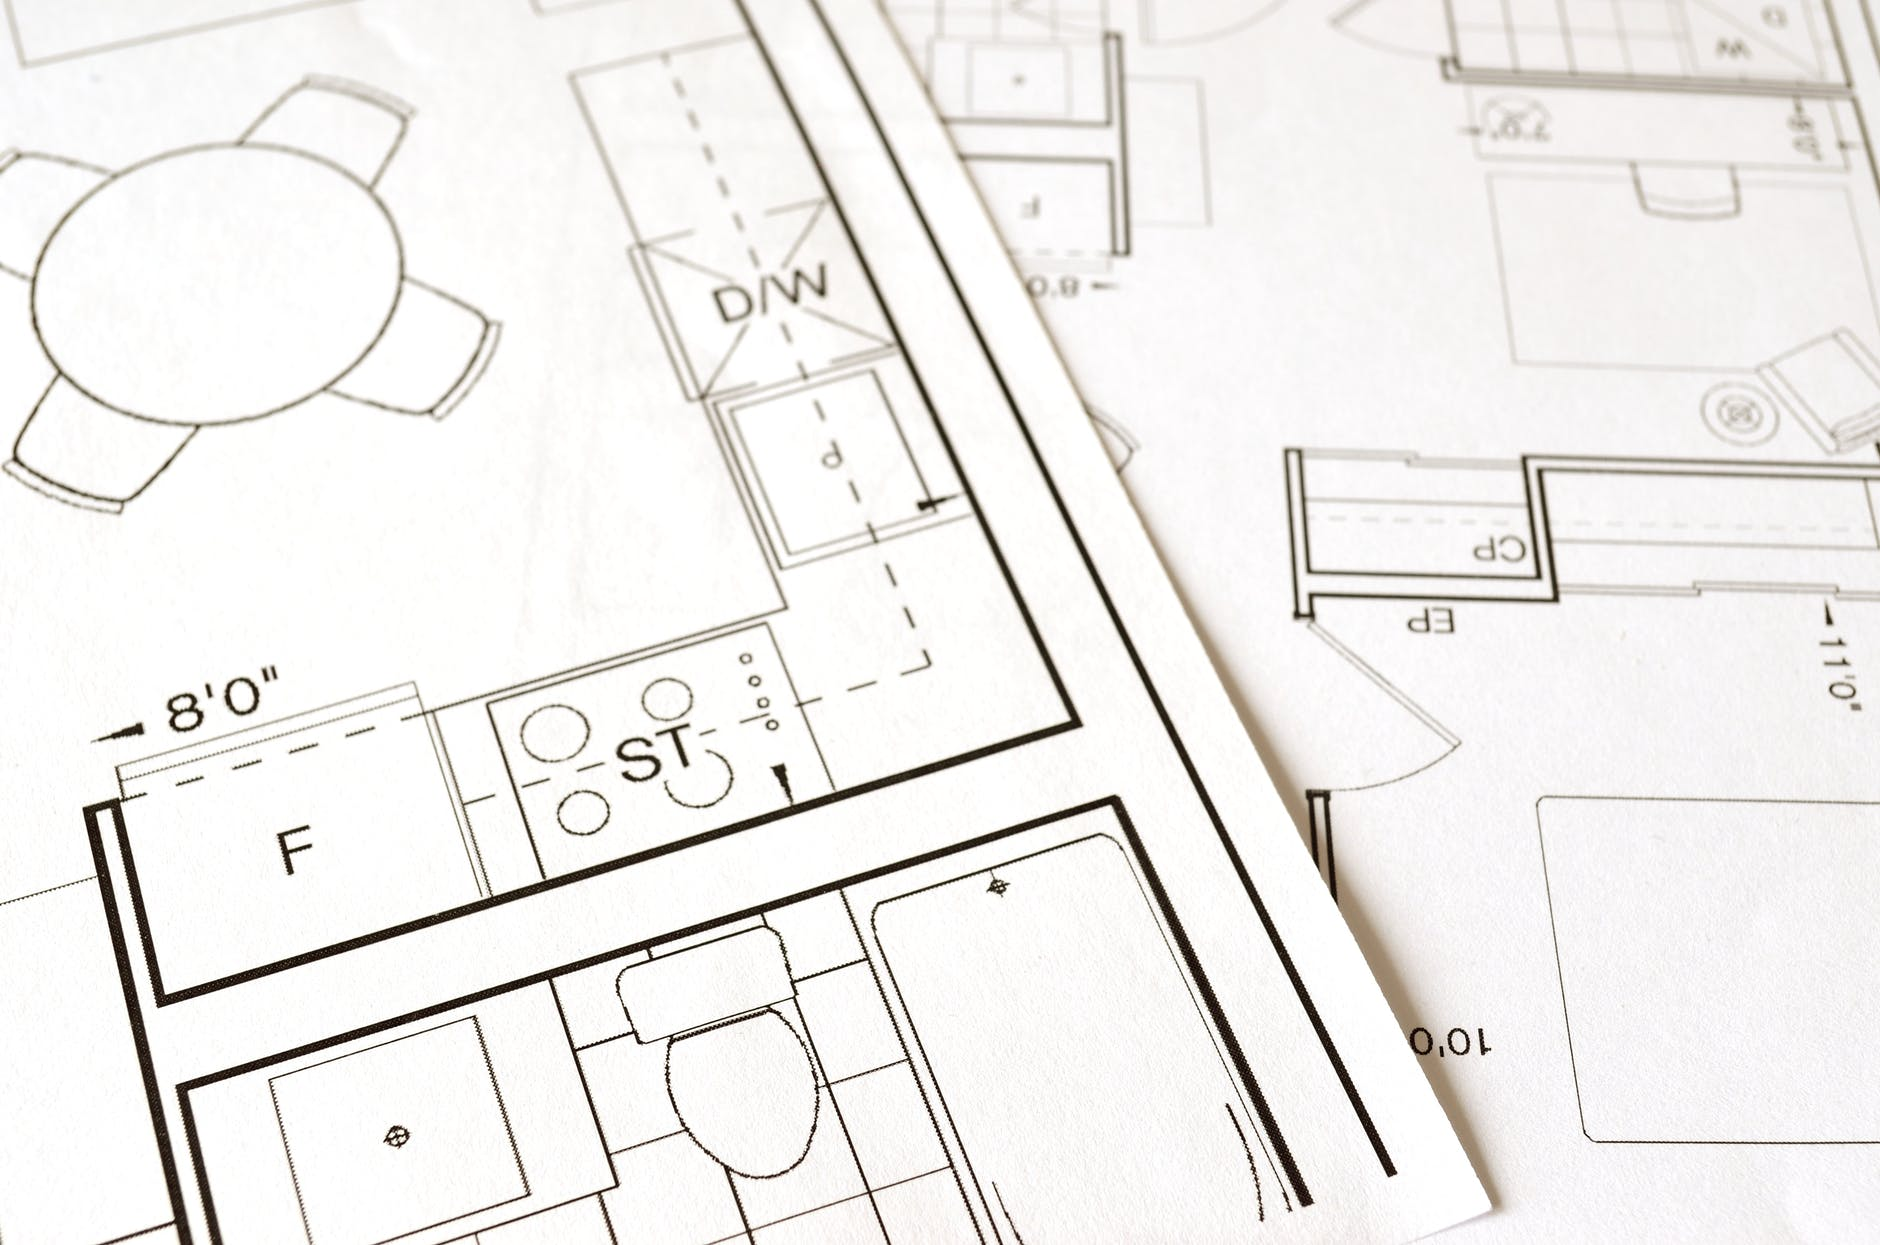 a blue print of a house to be built